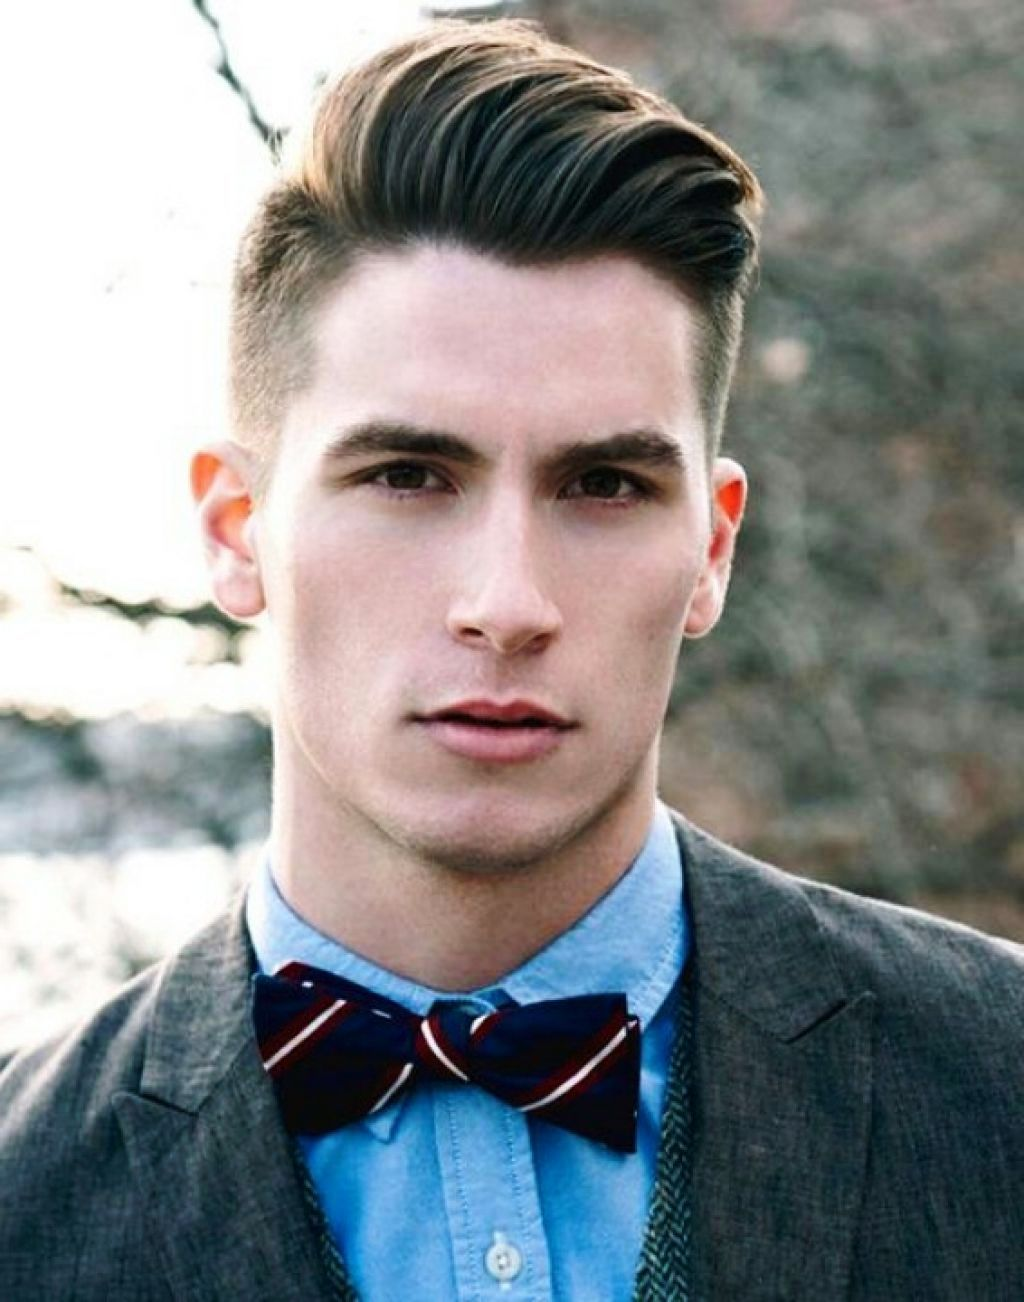 23 Top Risks Of Attending 23s Hairstyles Men In 2020 1920s Mens Hair Mens Hairstyles Peaky Blinders Hair